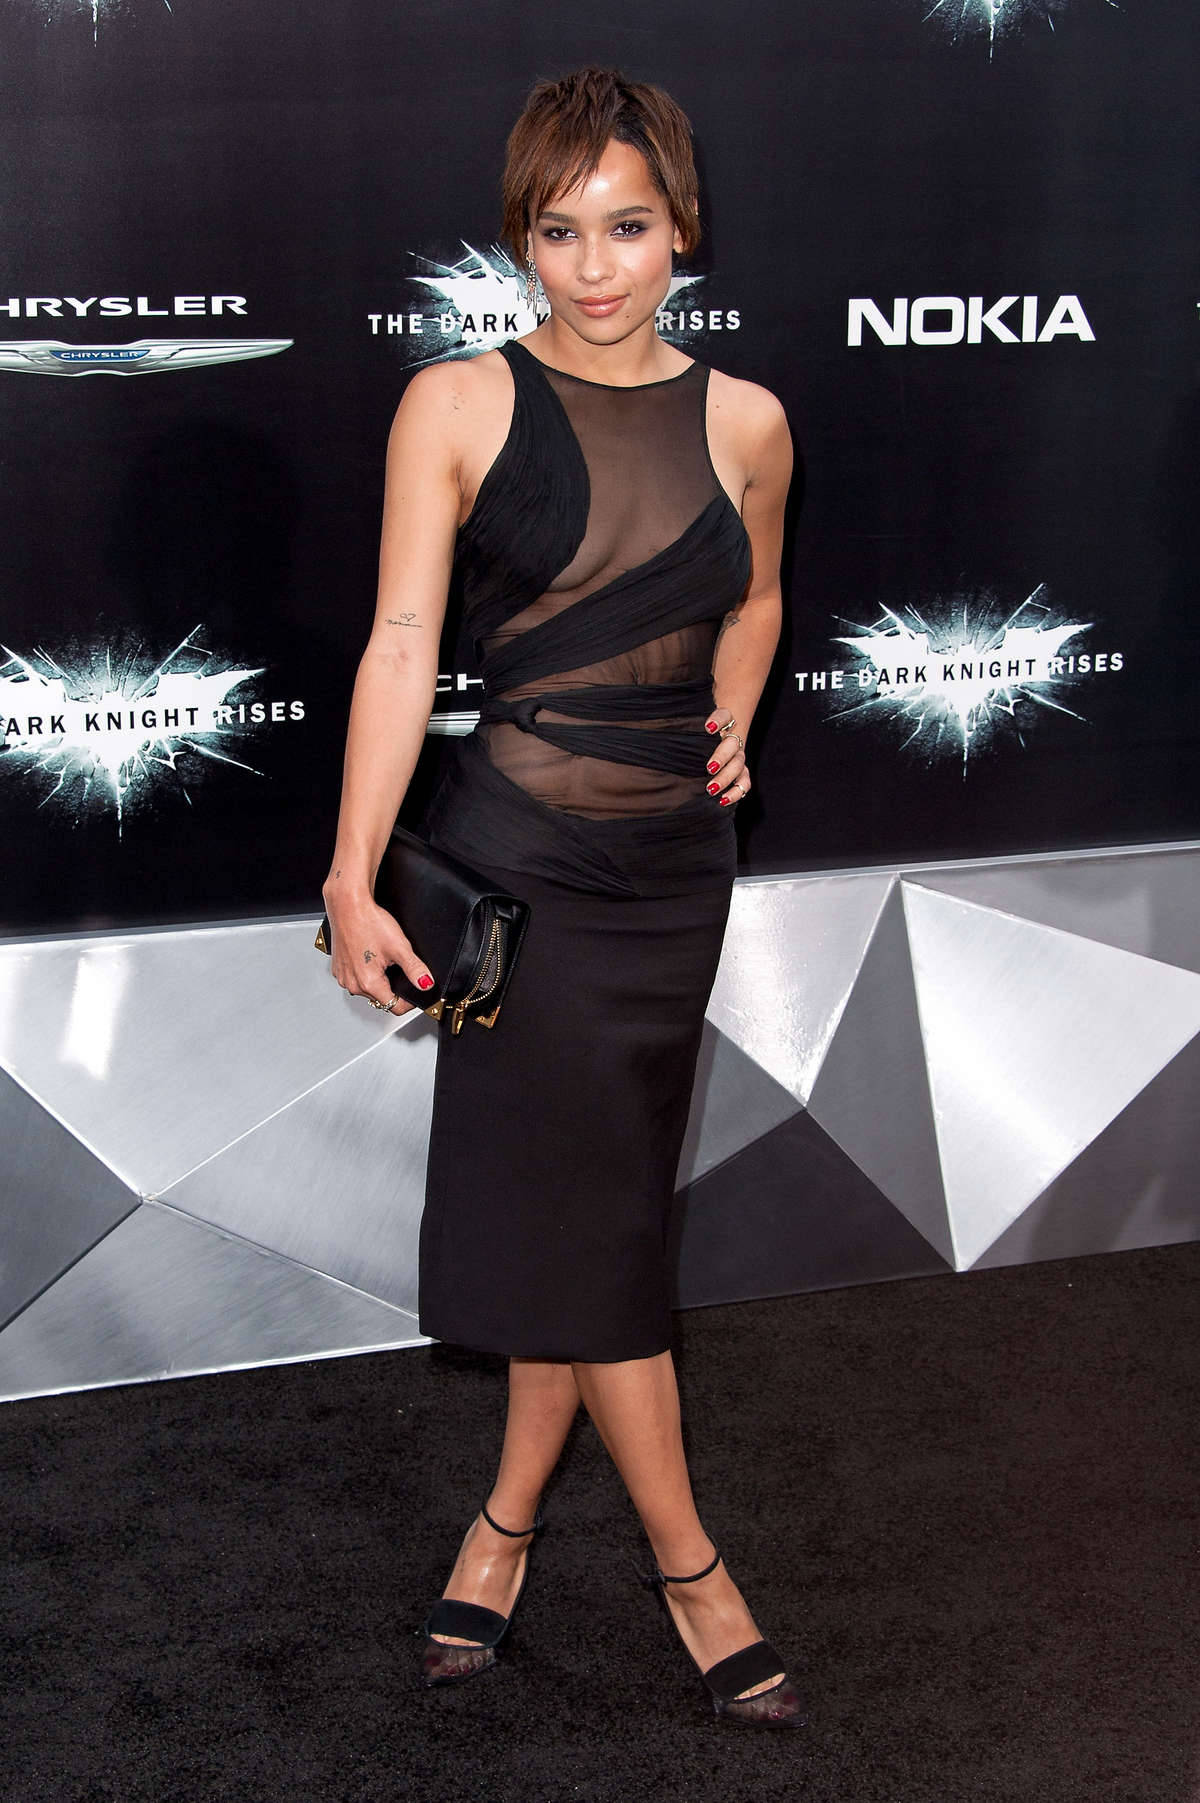 Zoe Kravitz at  The Dark Knight Rises  Premiere in New York July 17, 2012